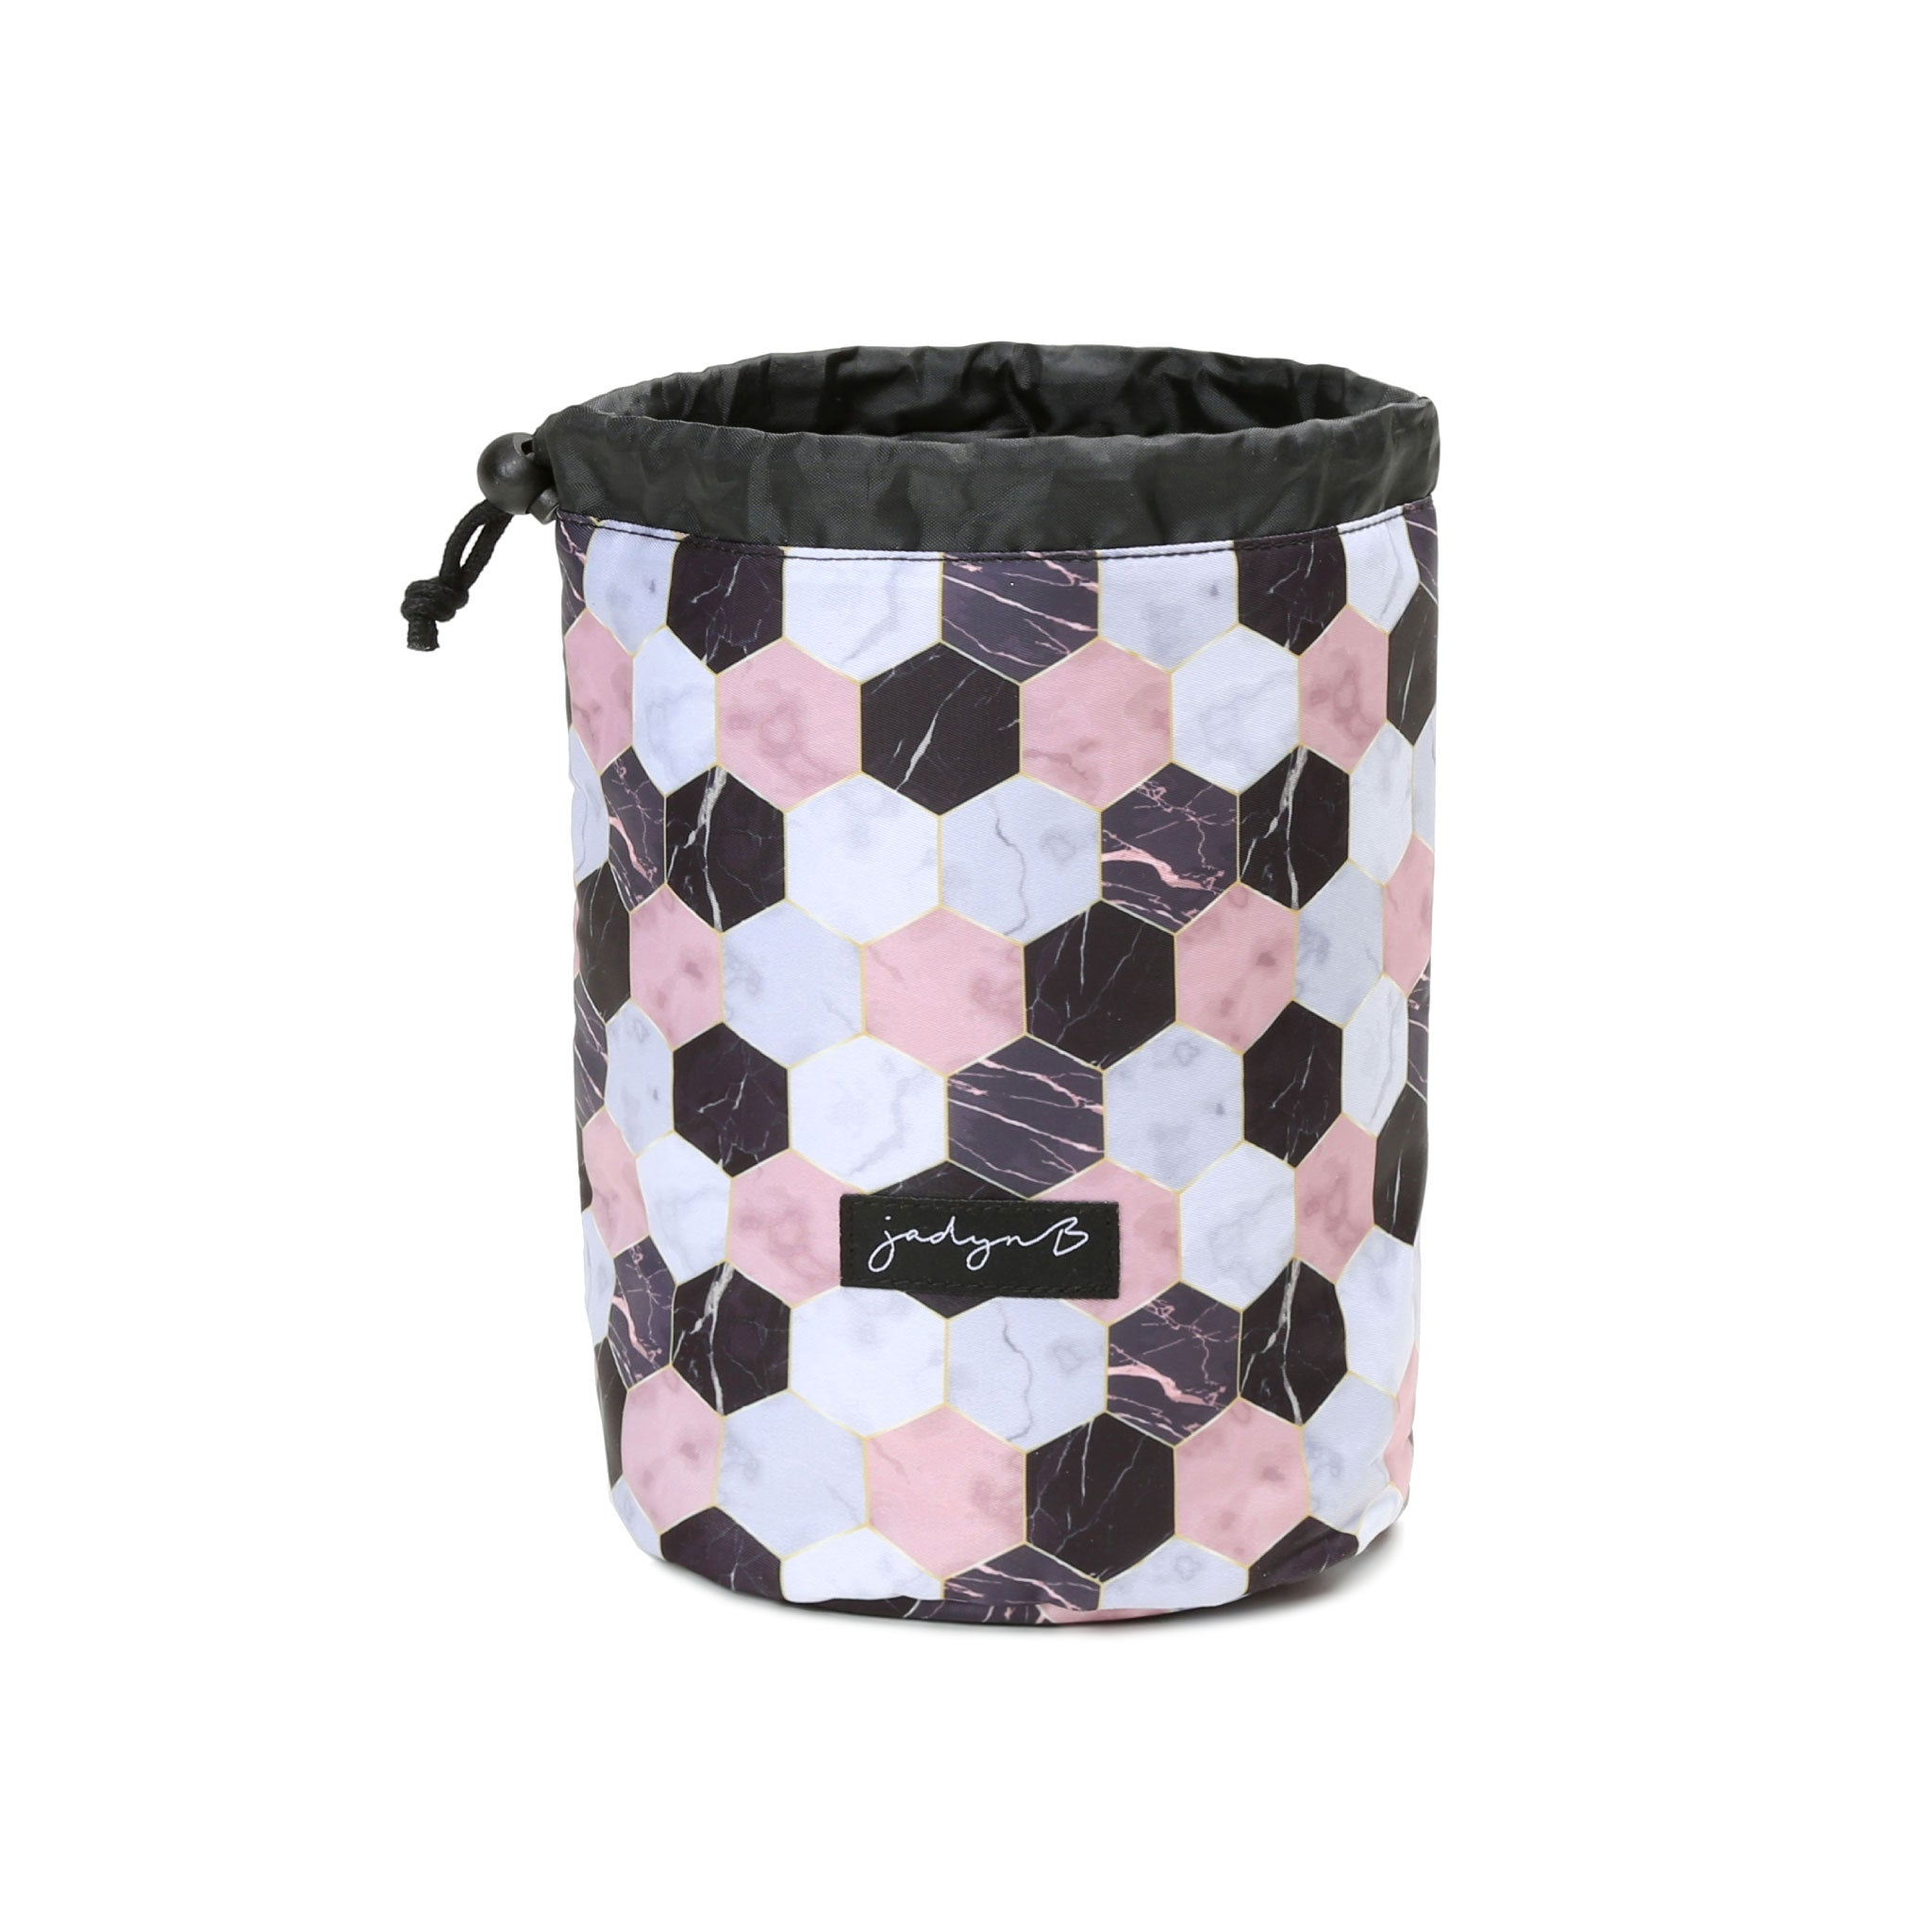 Cosmetic Cinch Bag - Marble Hex